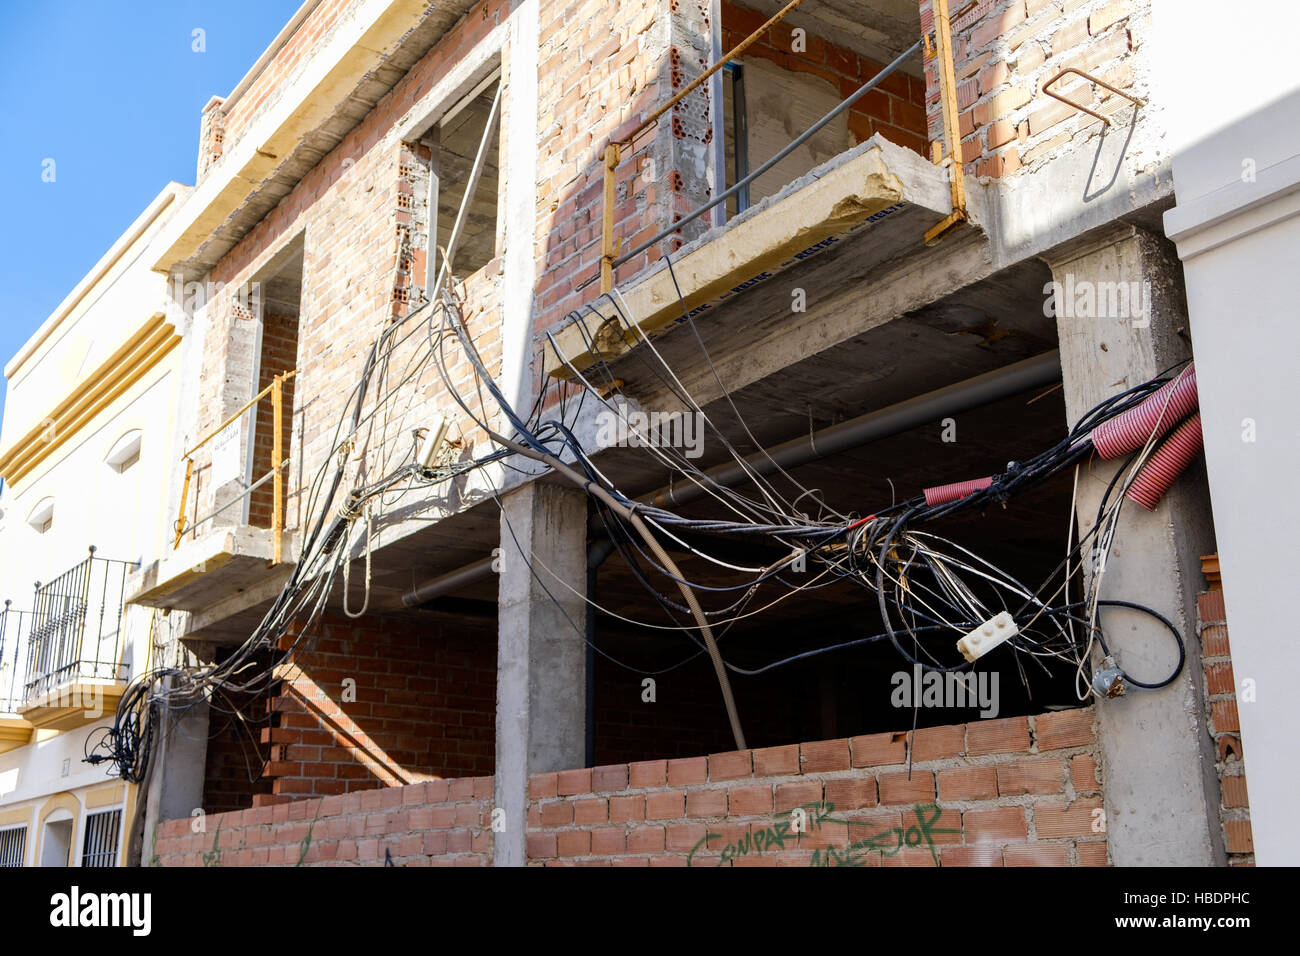 unsafe electrical wiring tangled up outside a house under. Black Bedroom Furniture Sets. Home Design Ideas